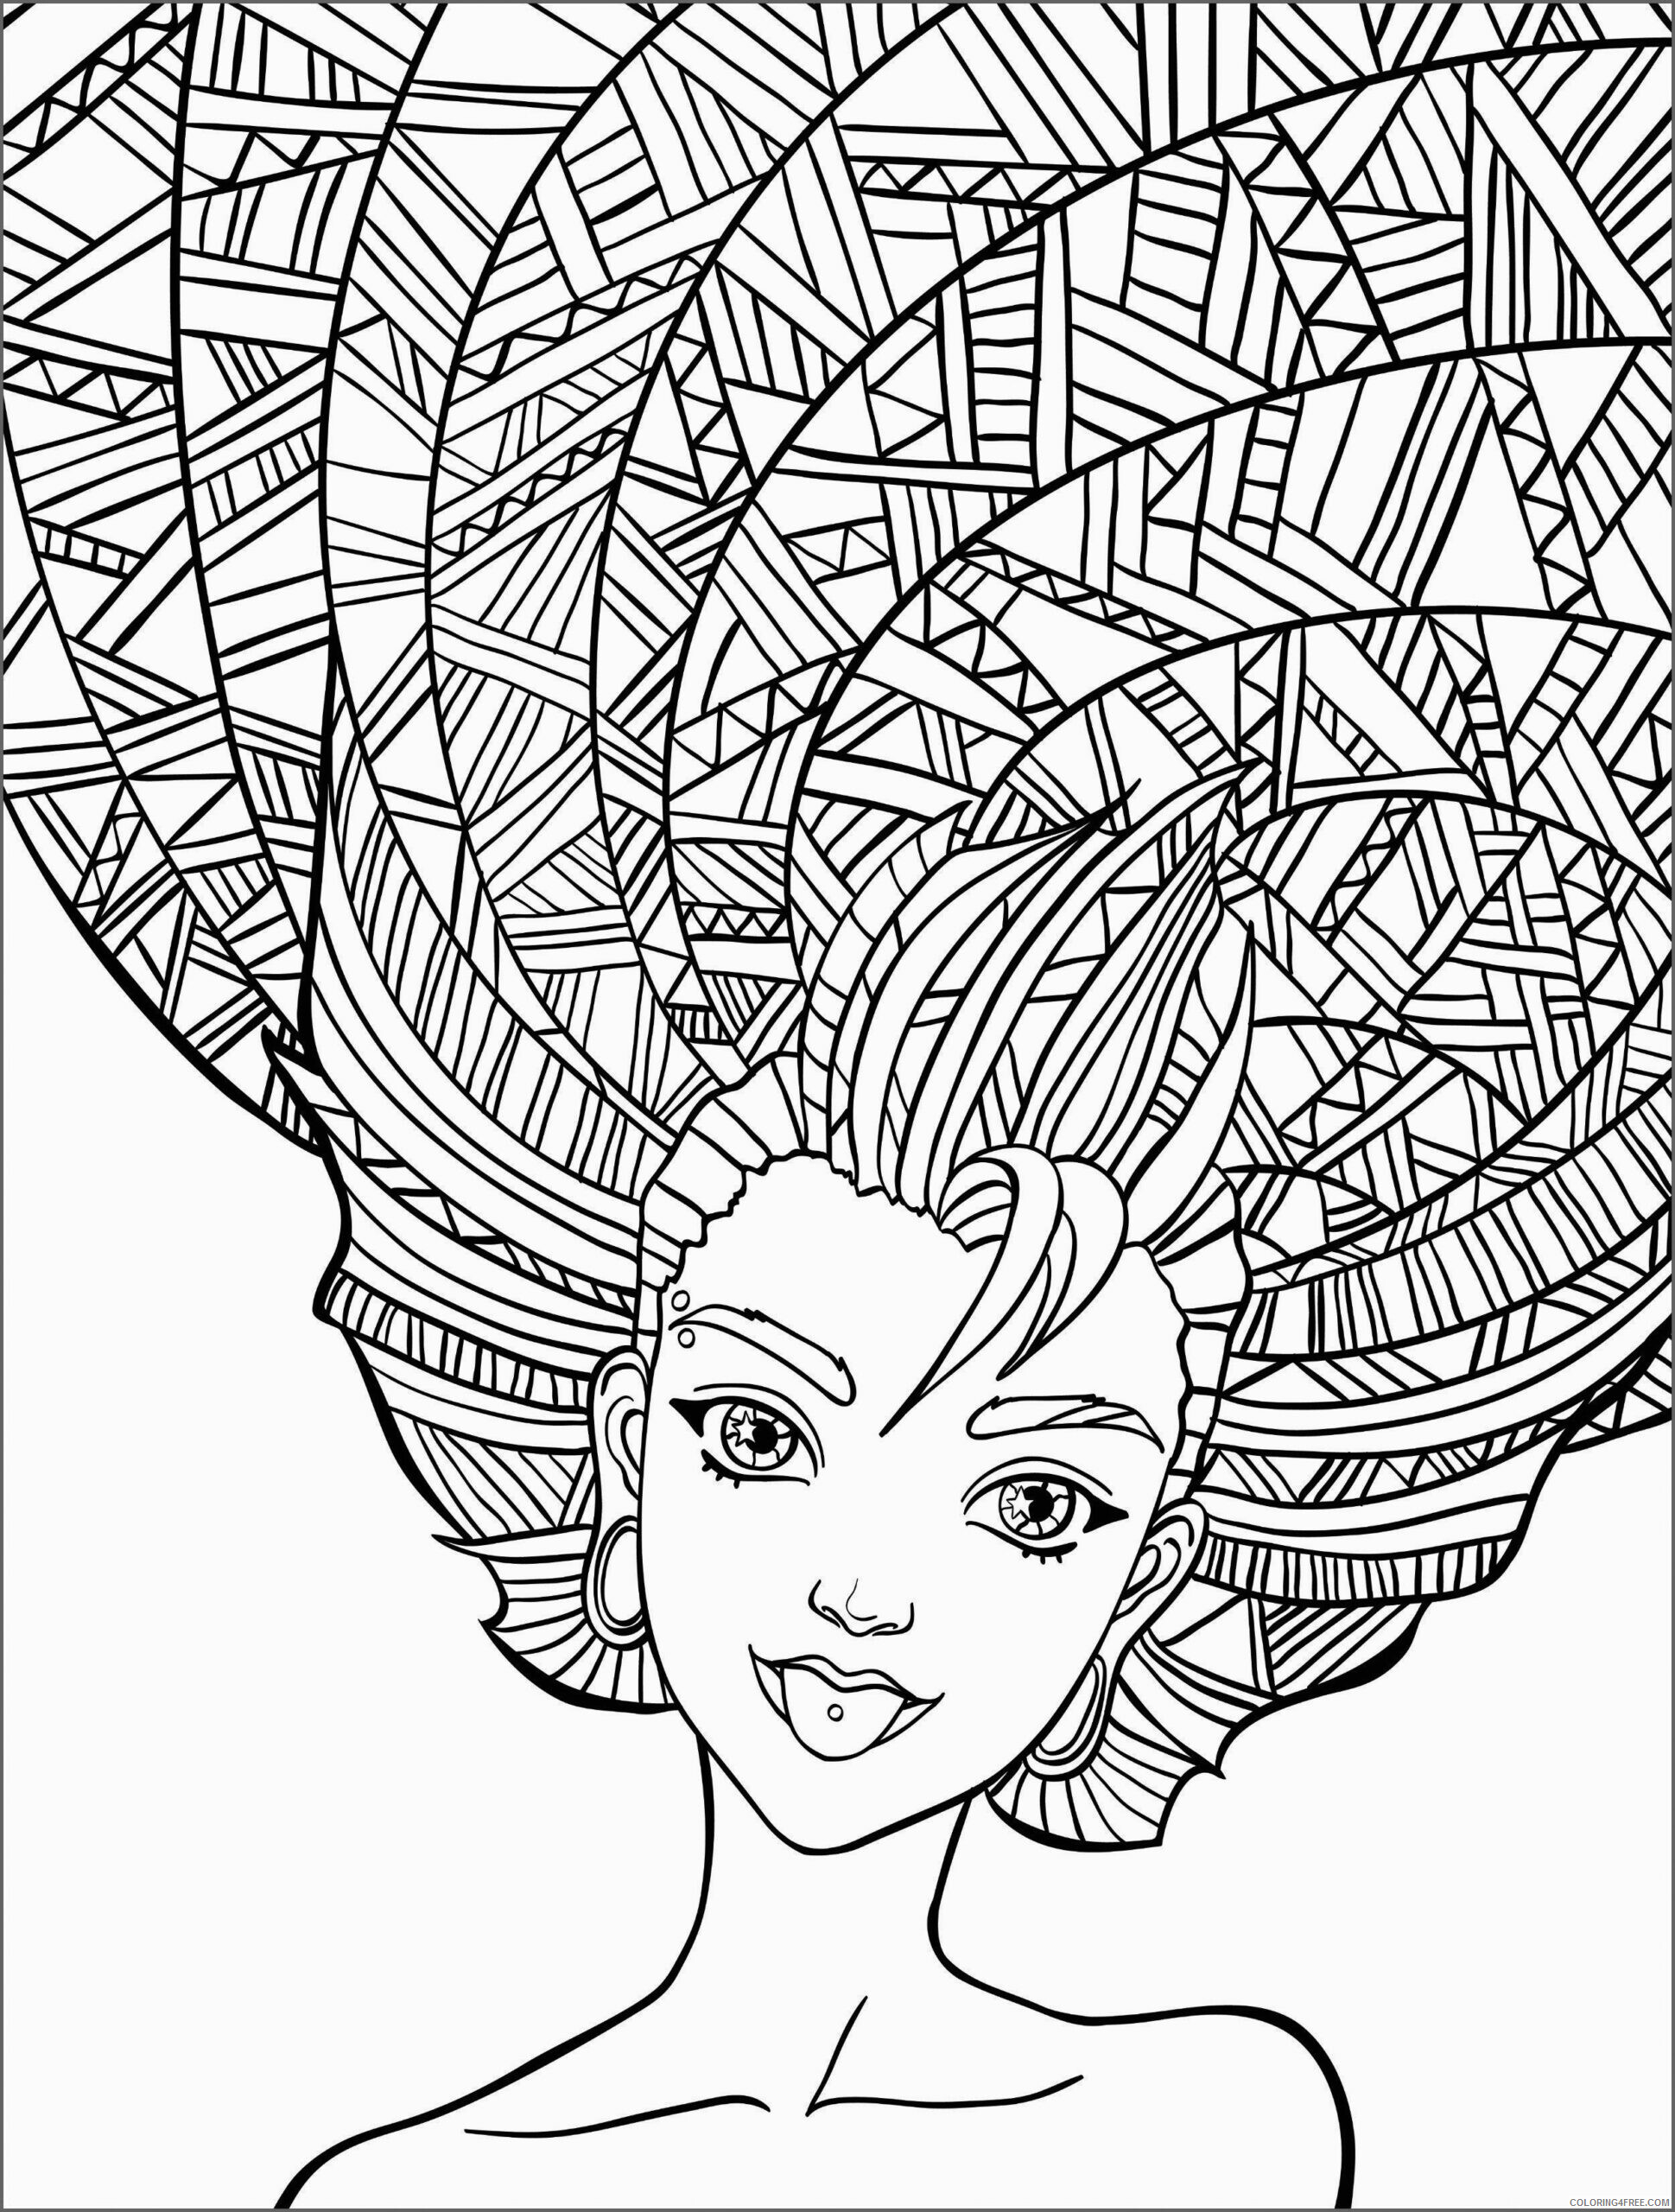 Funny Adult Coloring Pages Free for Adults Printable 2020 625 Coloring4free